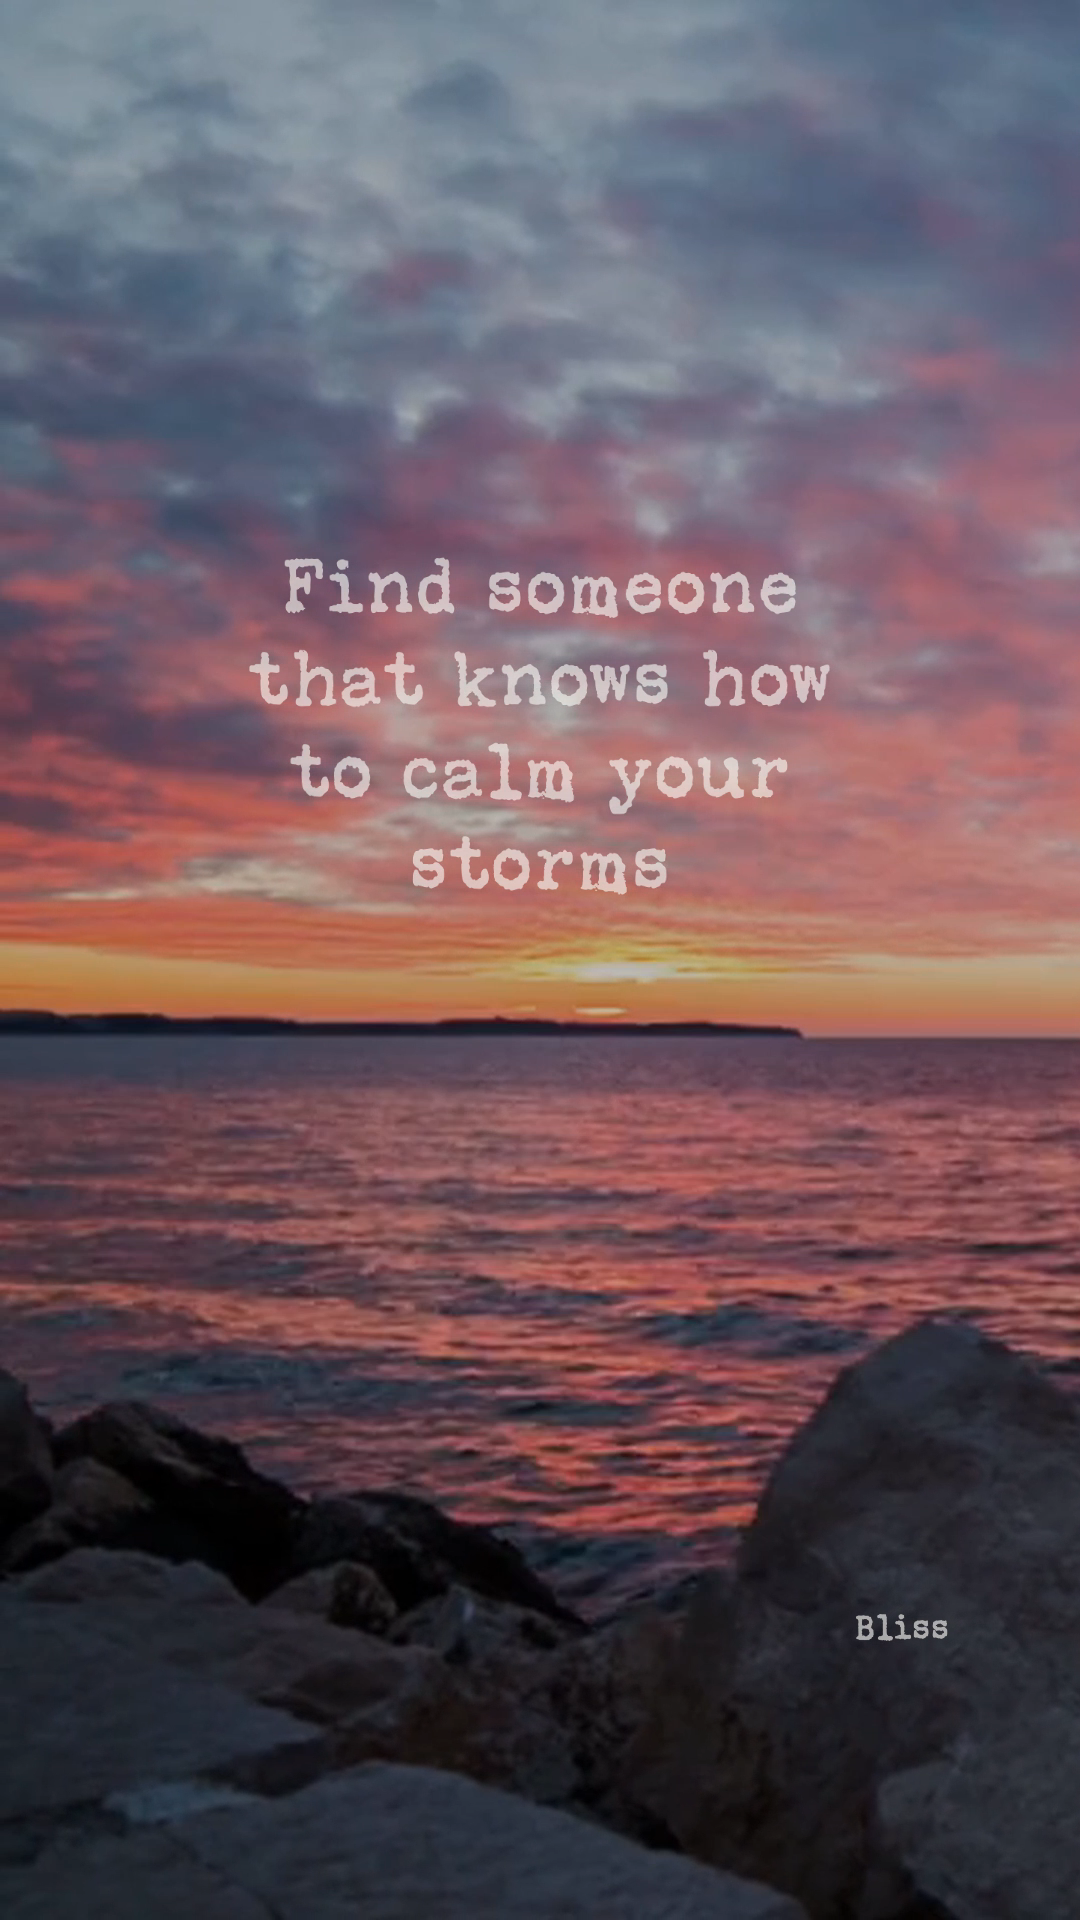 Find someone that knows how to calm your storms